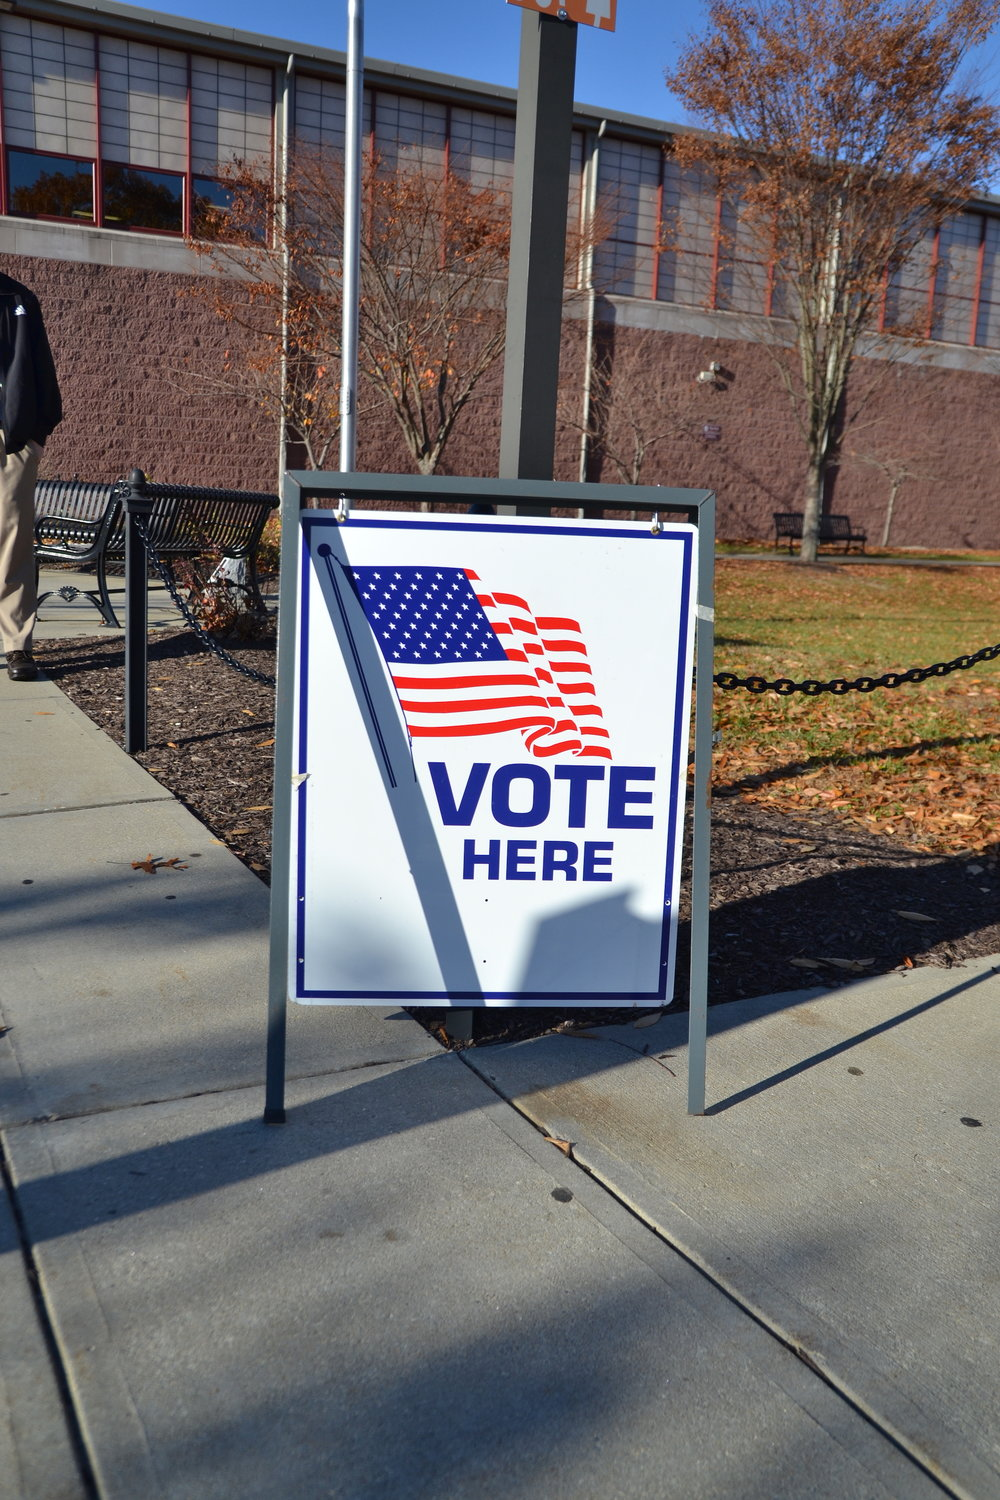 The Mansfield Community Center is where UConn students will be voting for the 2016 presidential election. Amar Batra/The Daily Campus